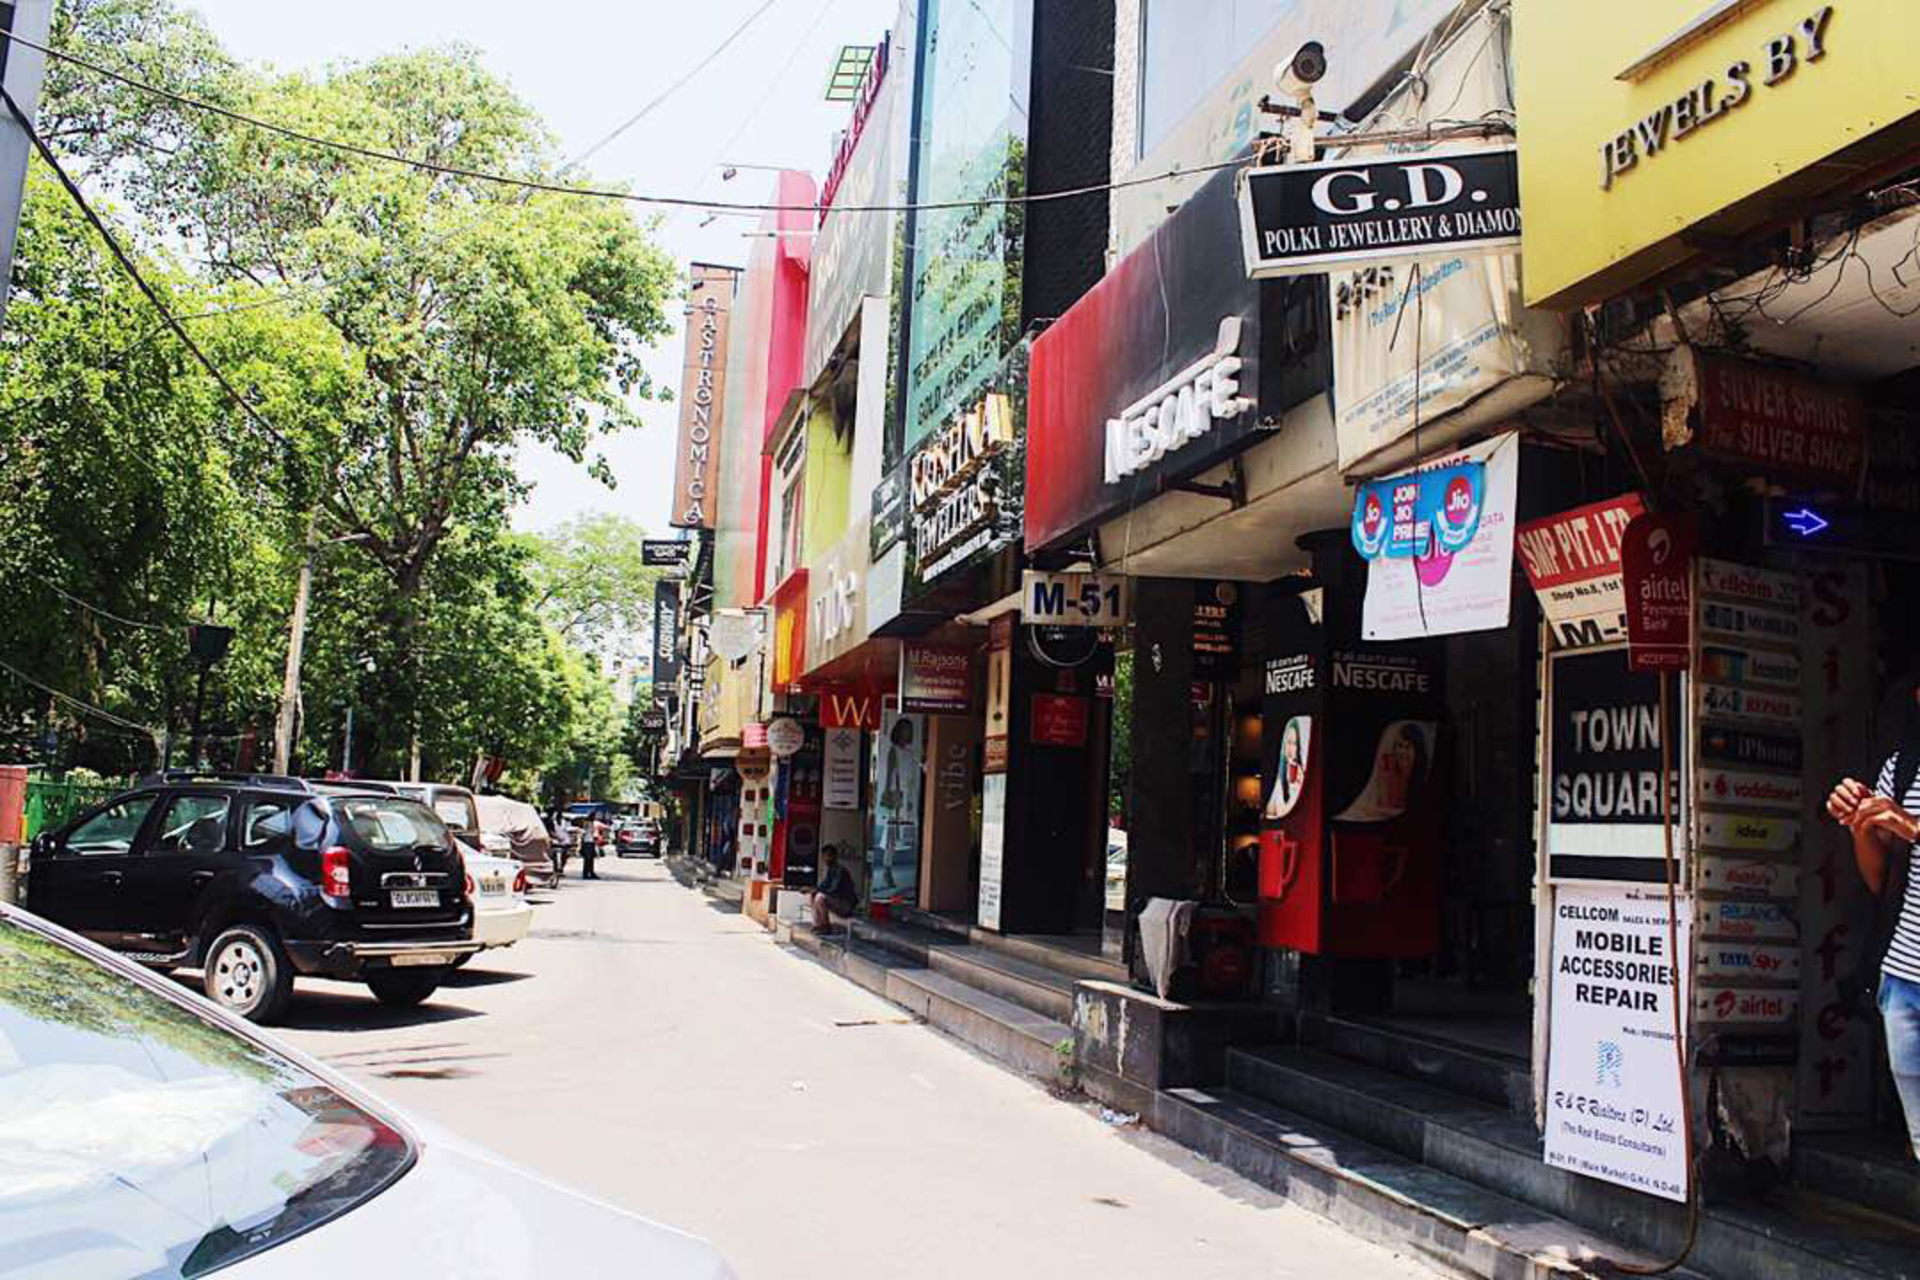 5 hidden gems in Greater Kailash-1 M Block Market to shop till your drop image